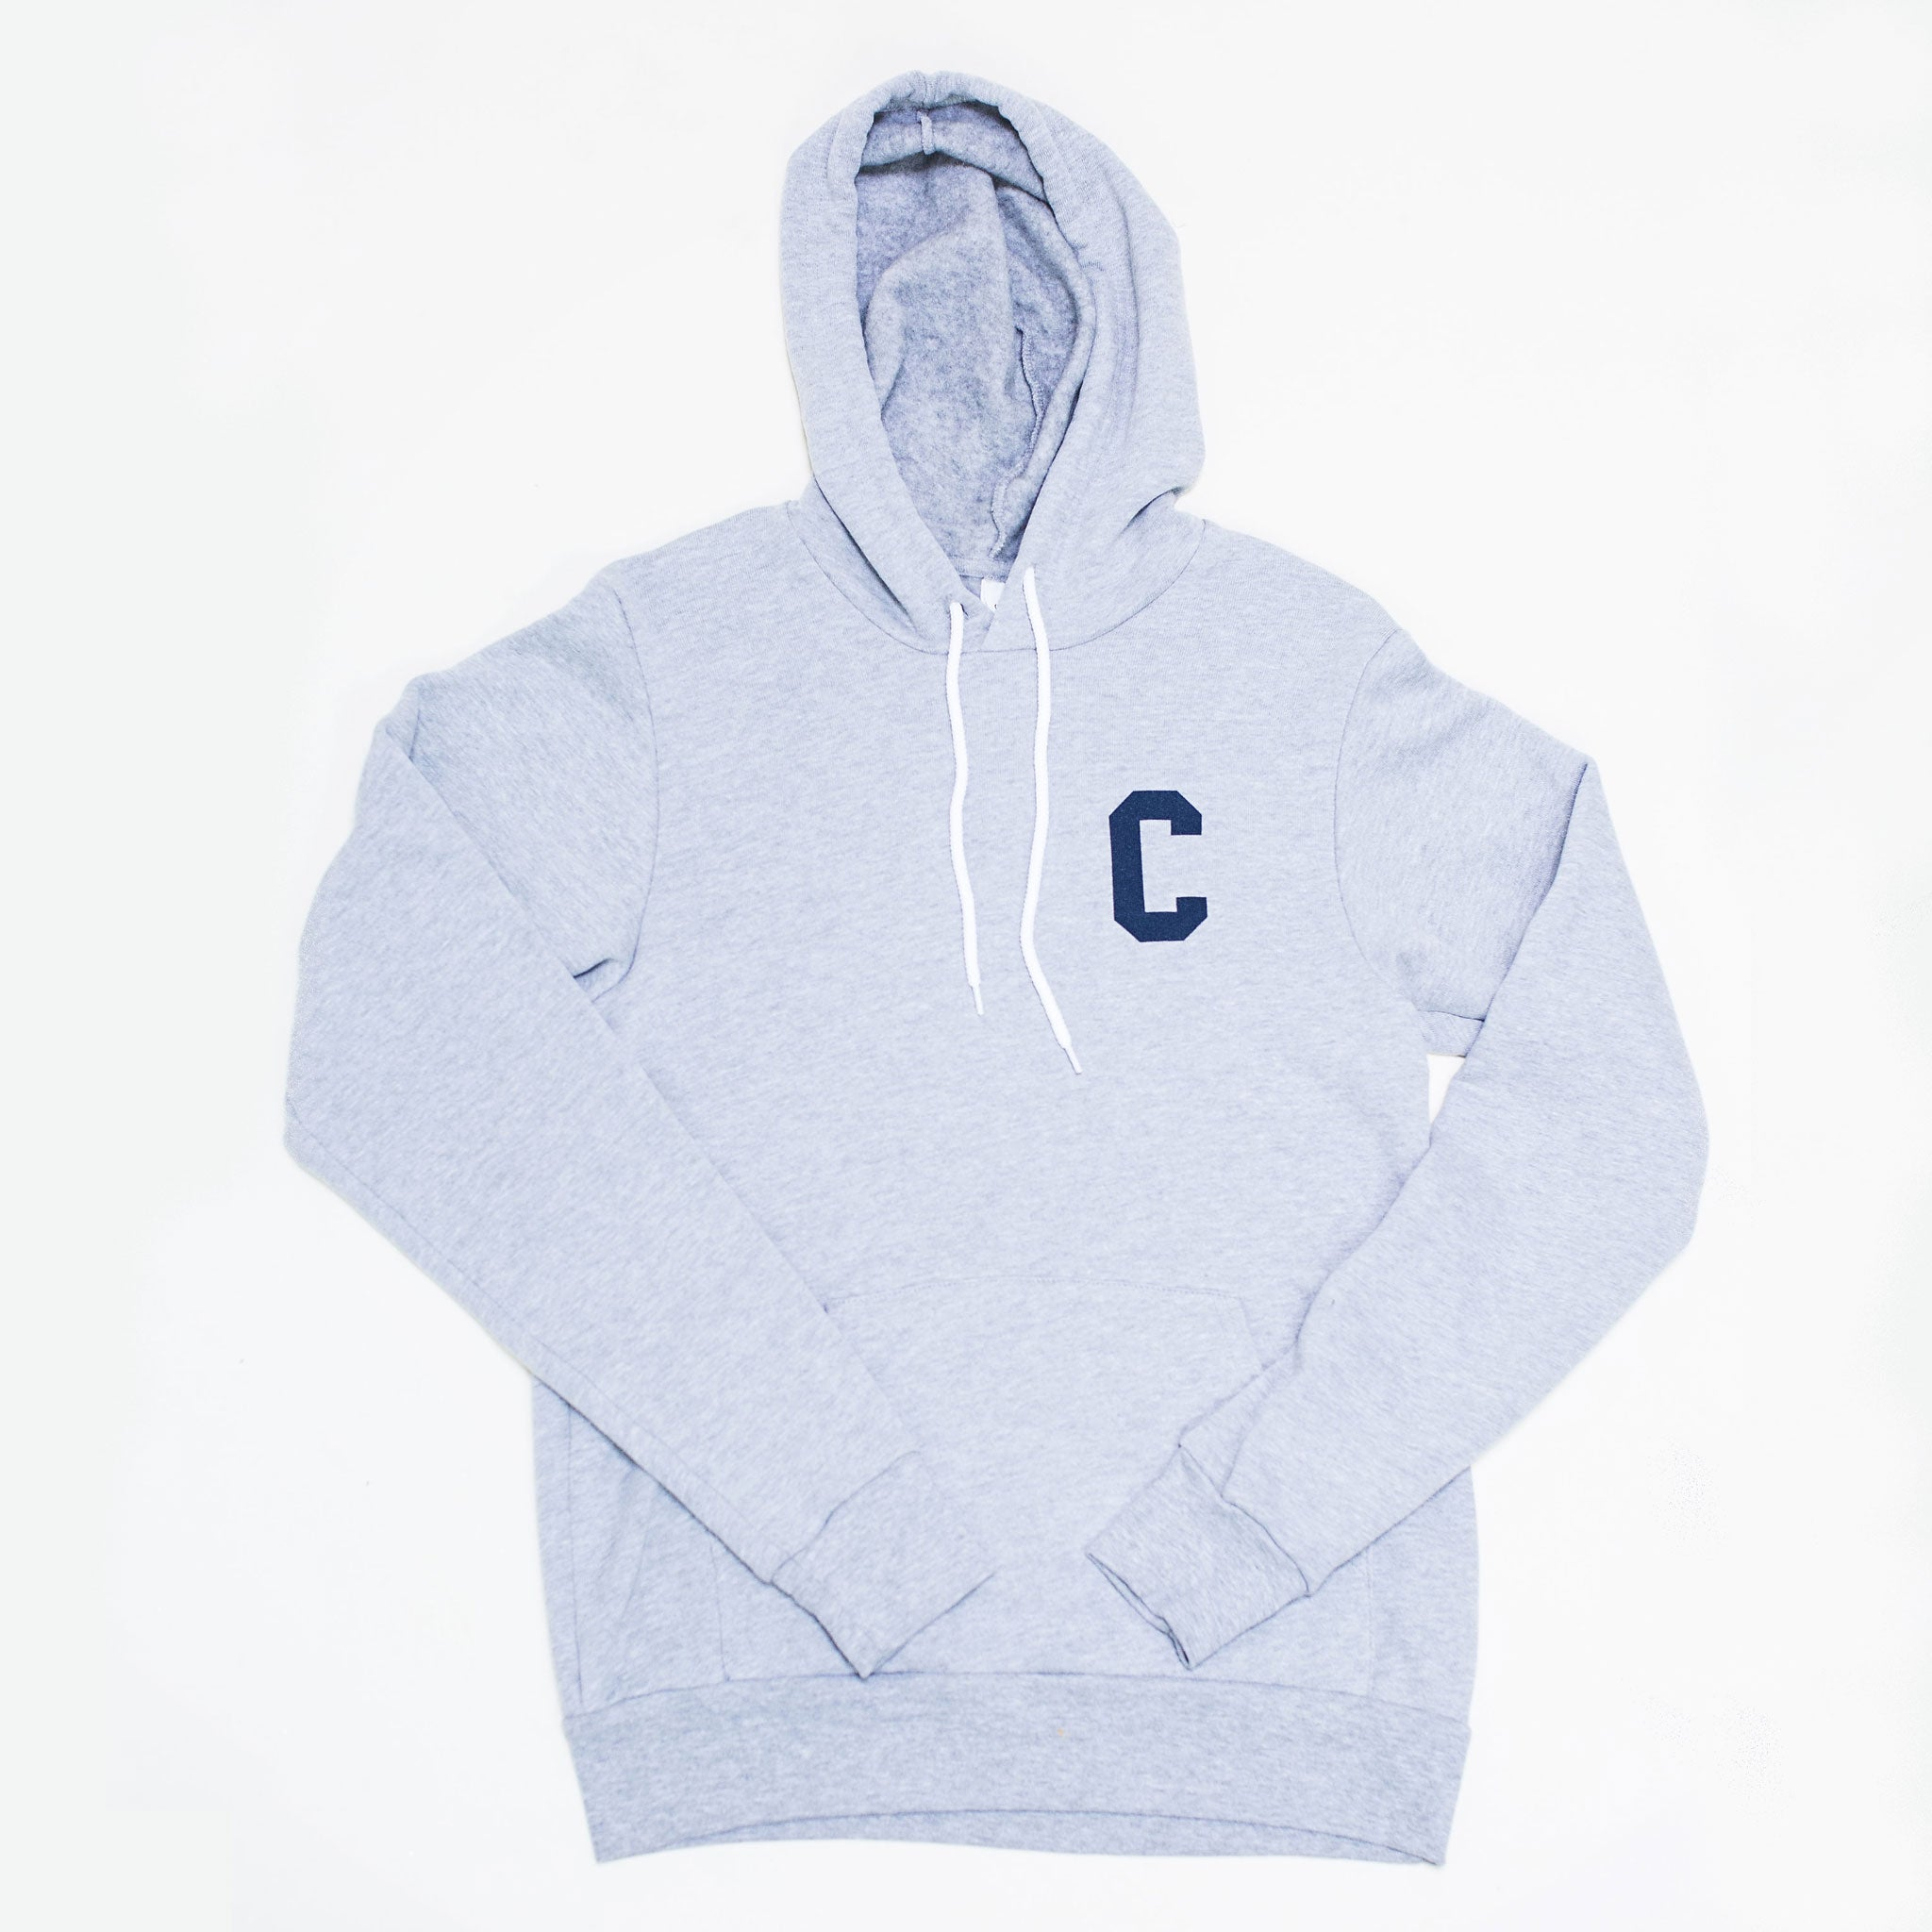 Coolidge Adult Hooded Sweatshirt